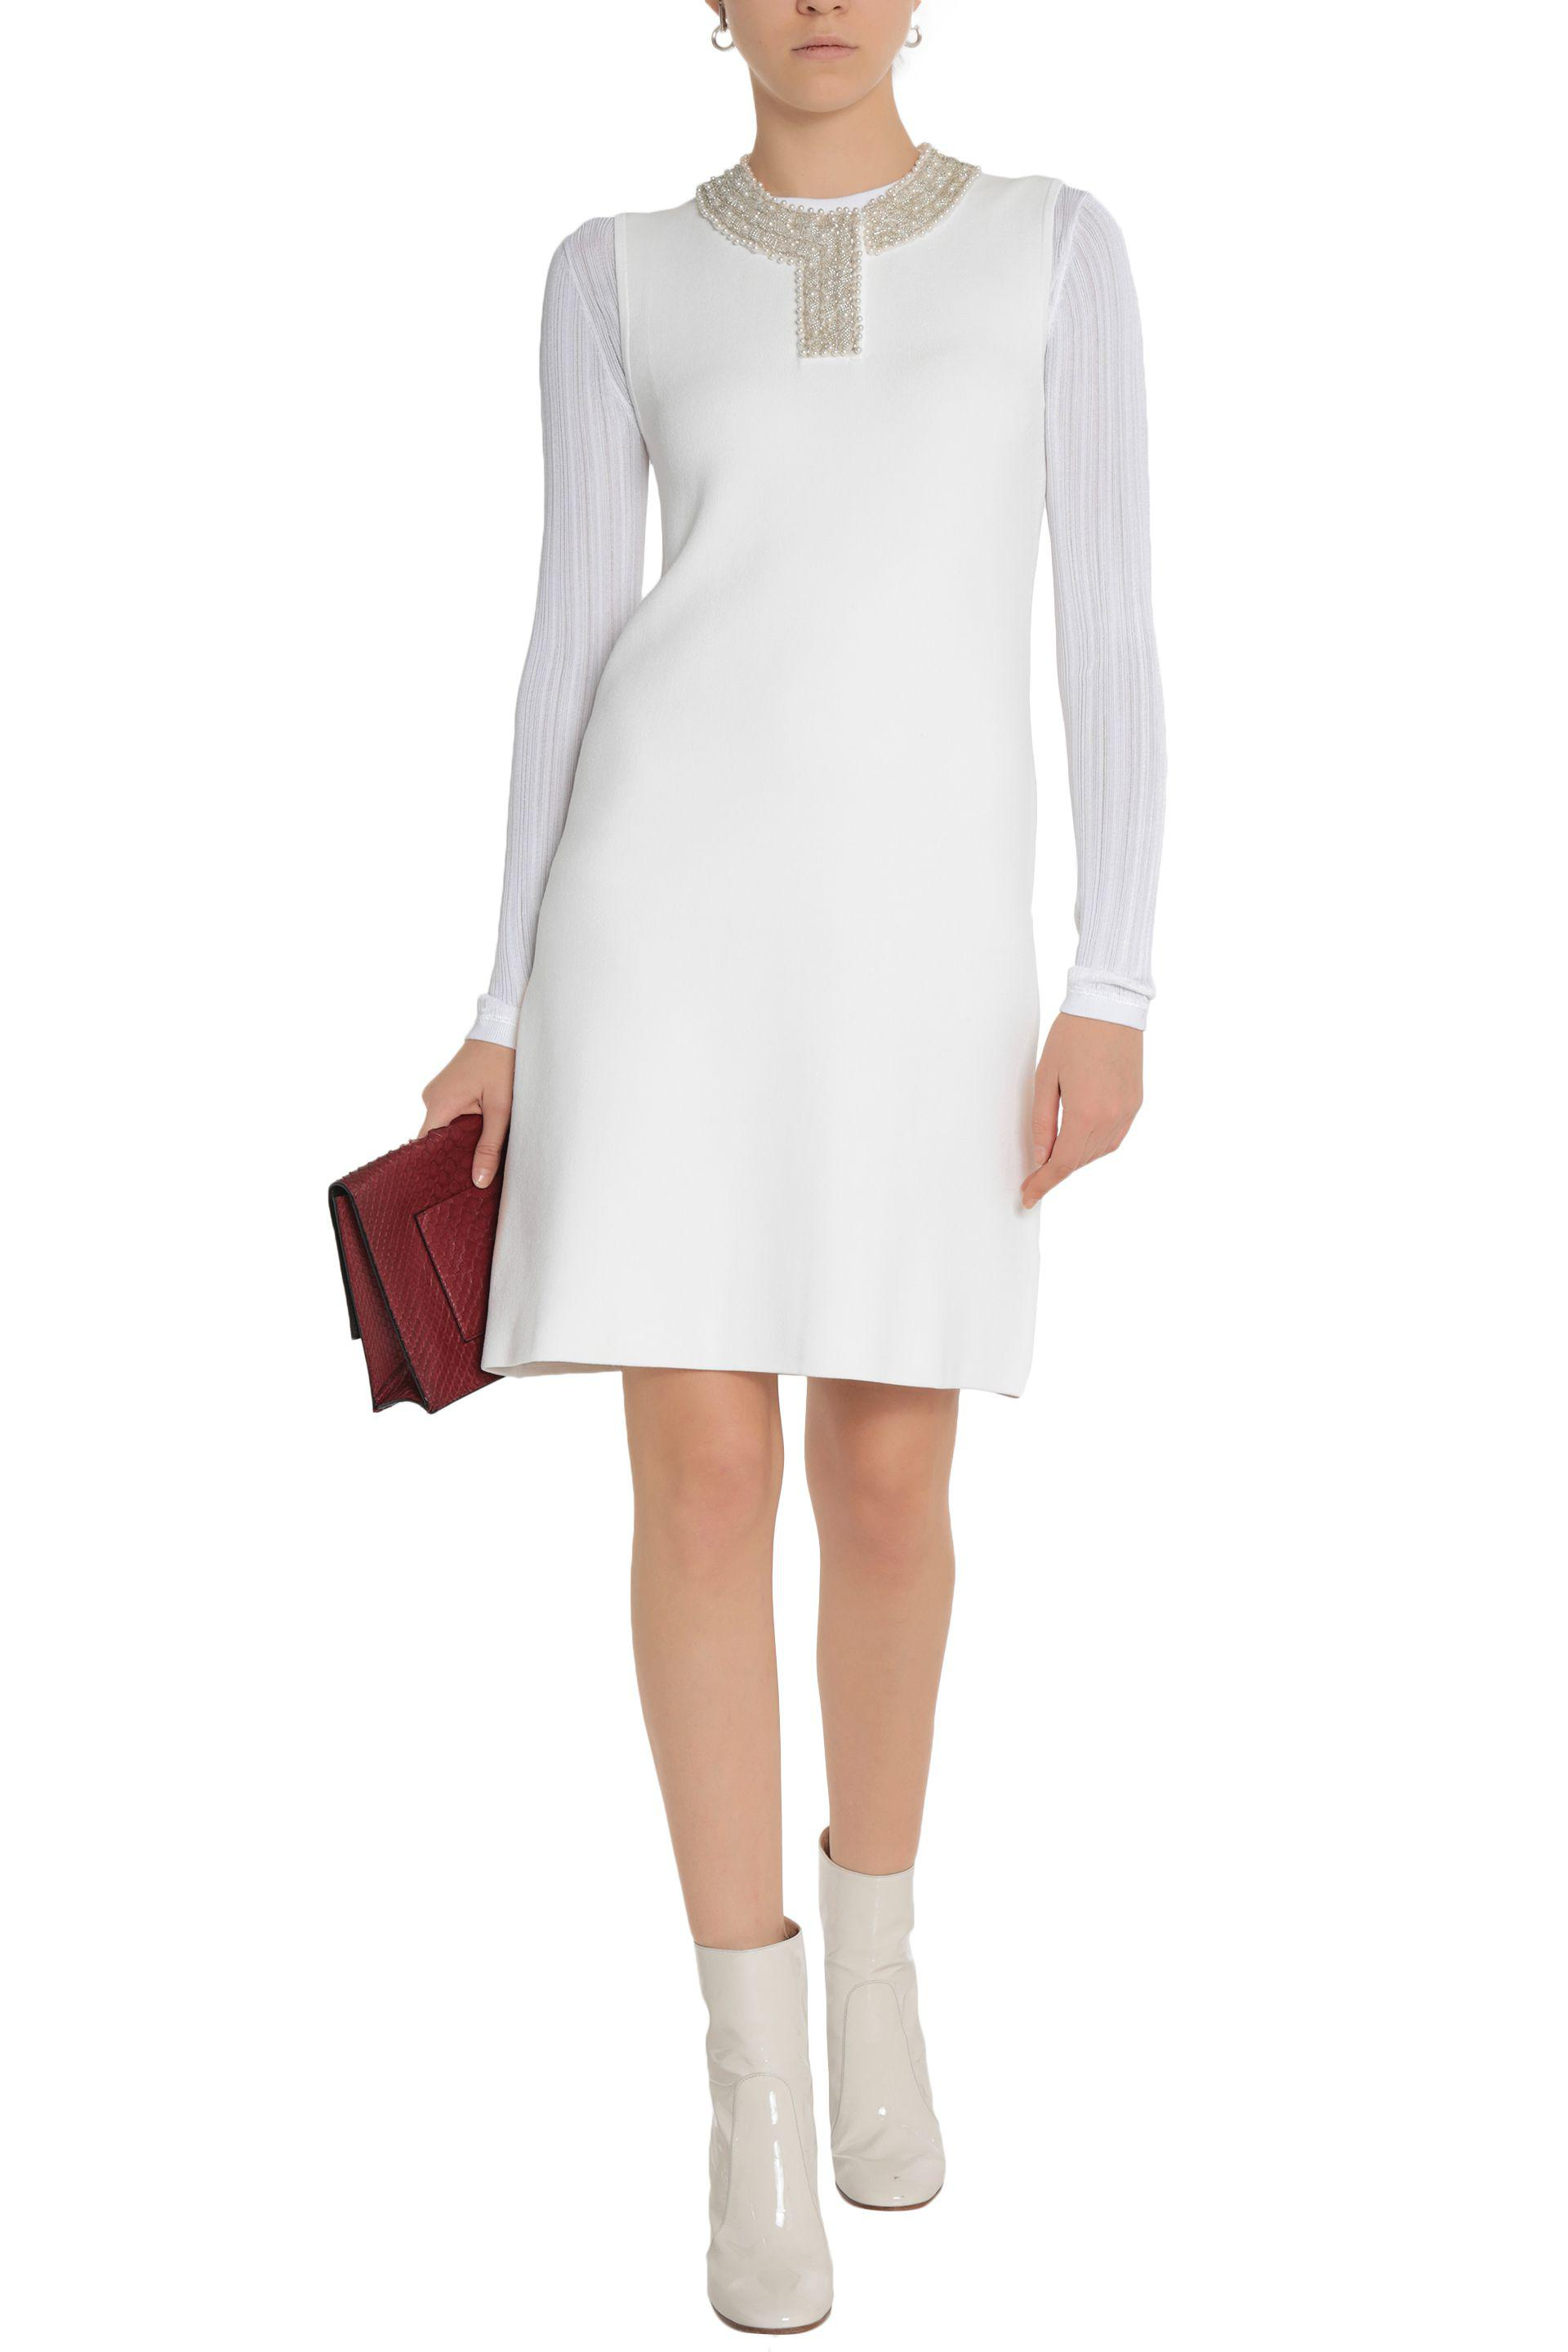 Ganni Woman Loras Embellished Stretch-knit Dress White Size M Ganni Clearance Choice Discount Manchester Great Sale 62OxPq2H1